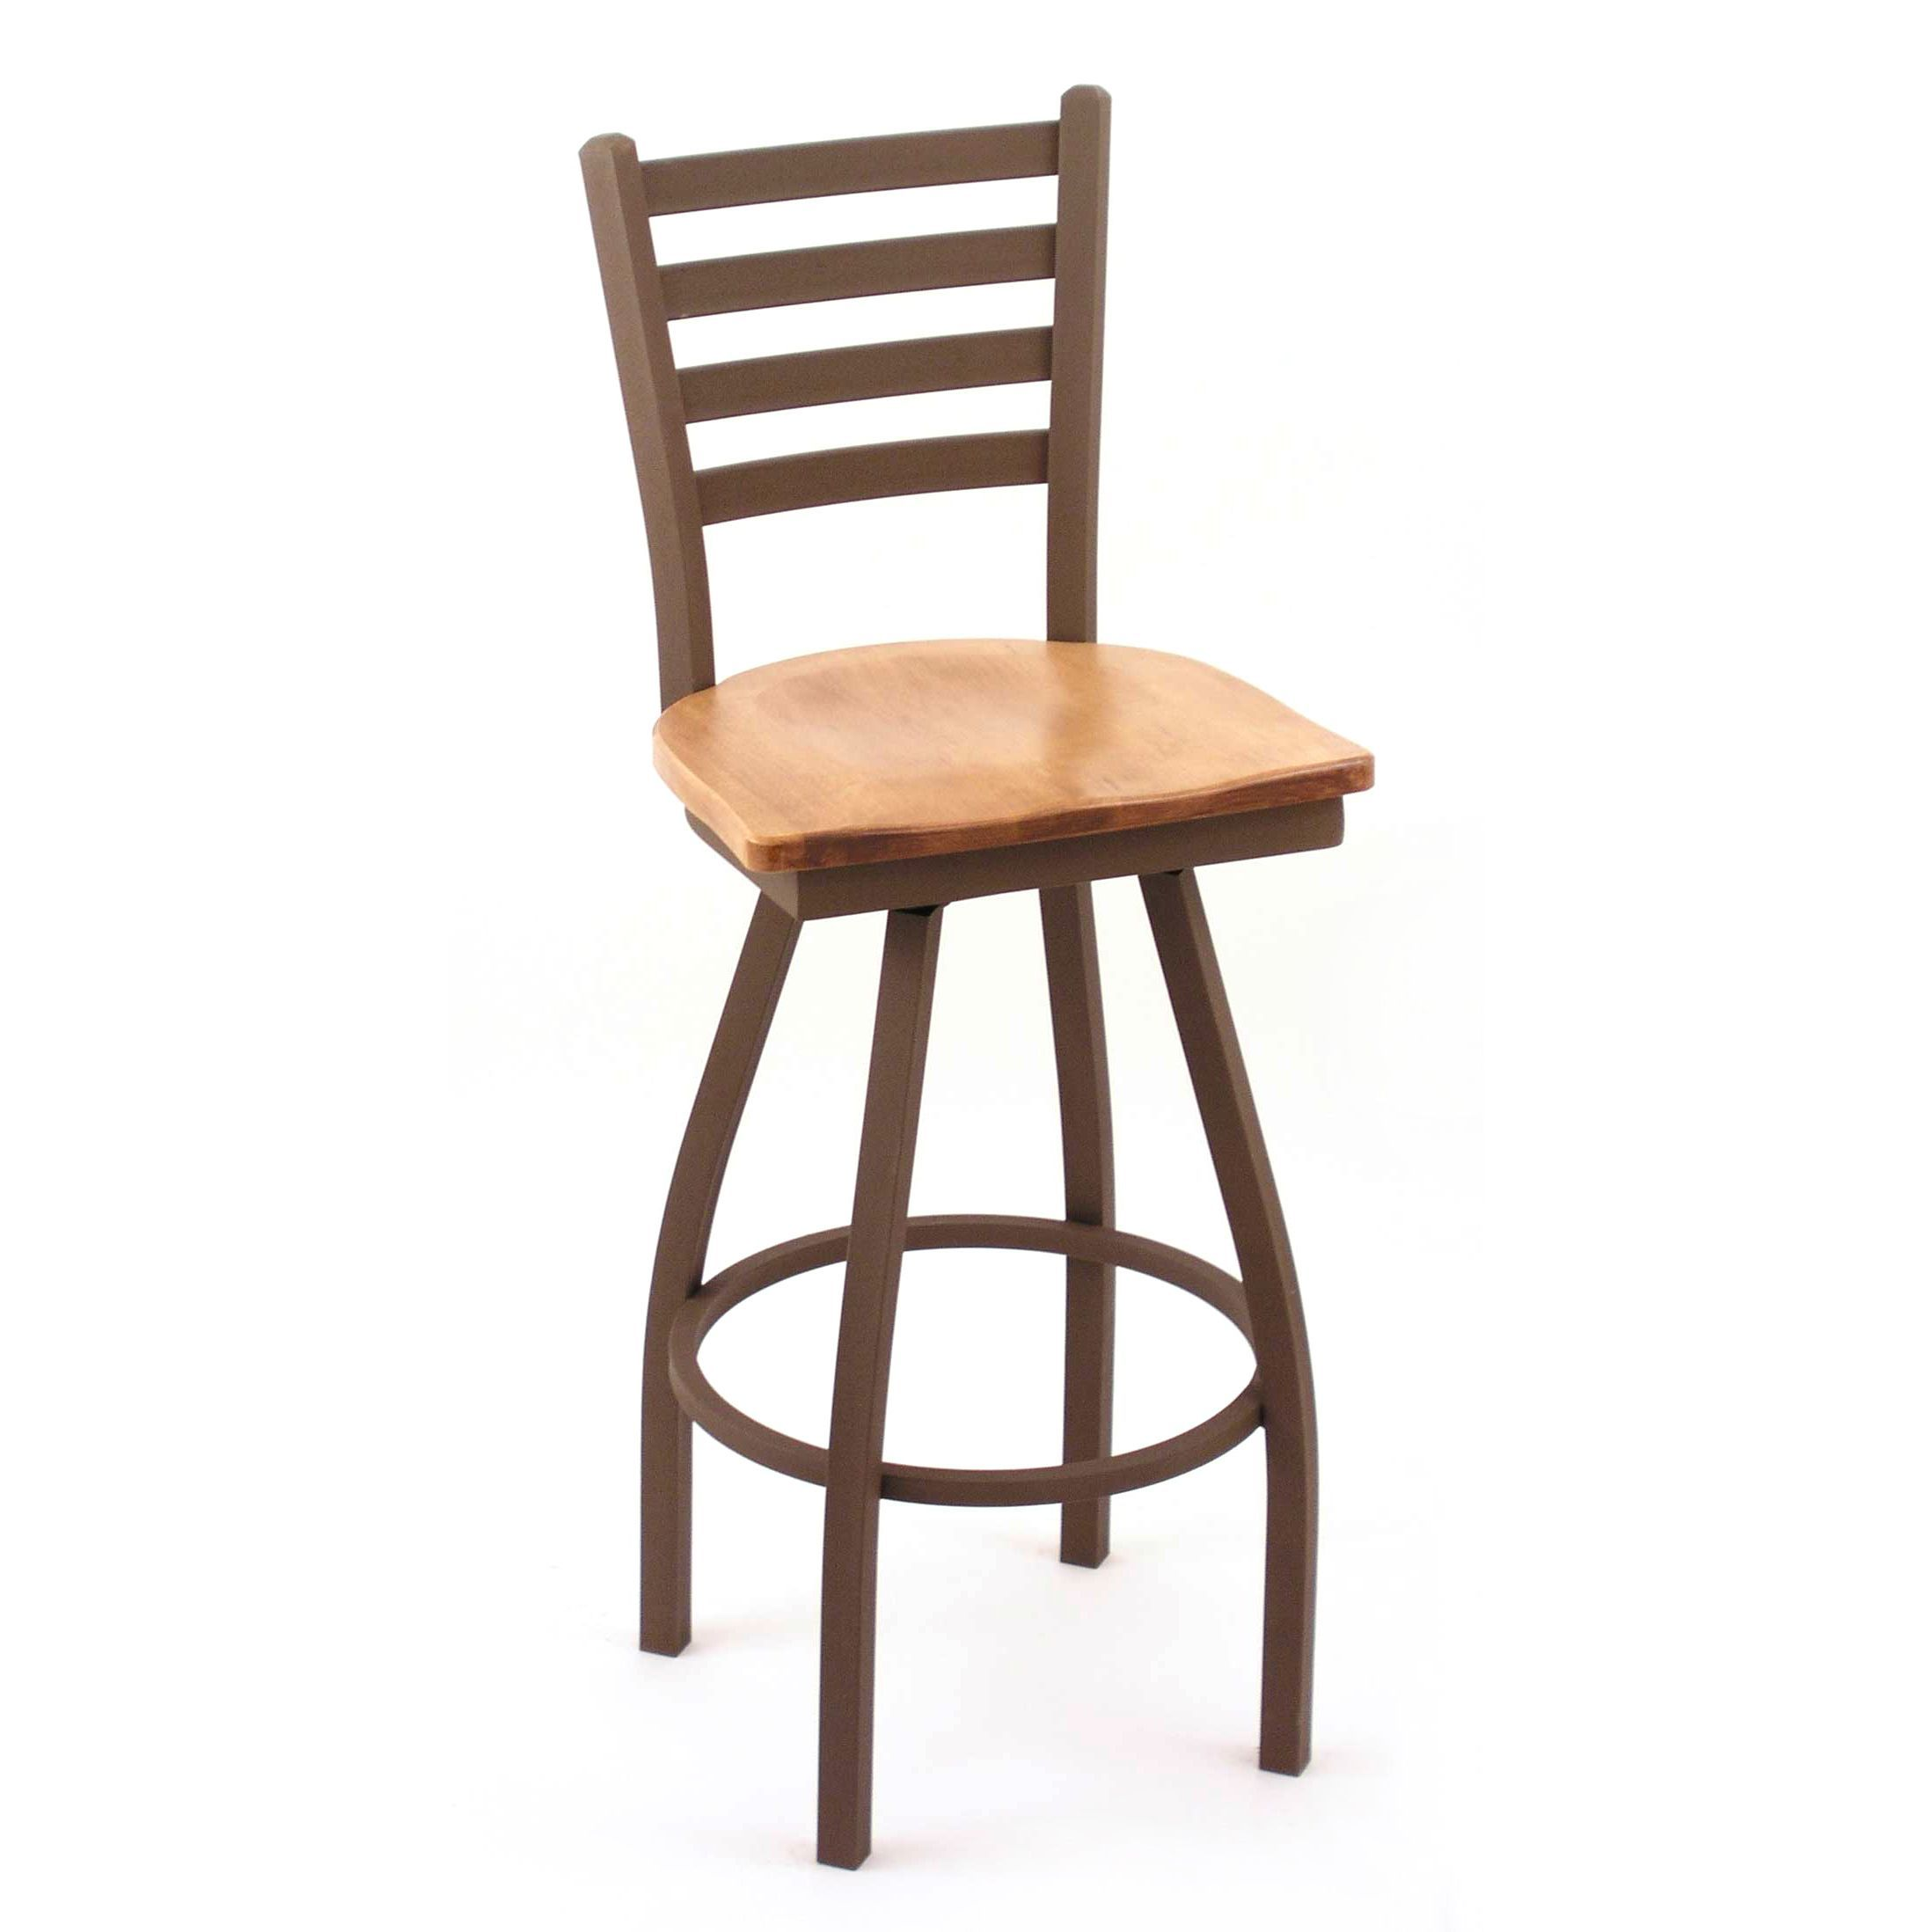 Cambridge 36 Inch Maple Horizontal Slat Back Bar Stool Extra Tall